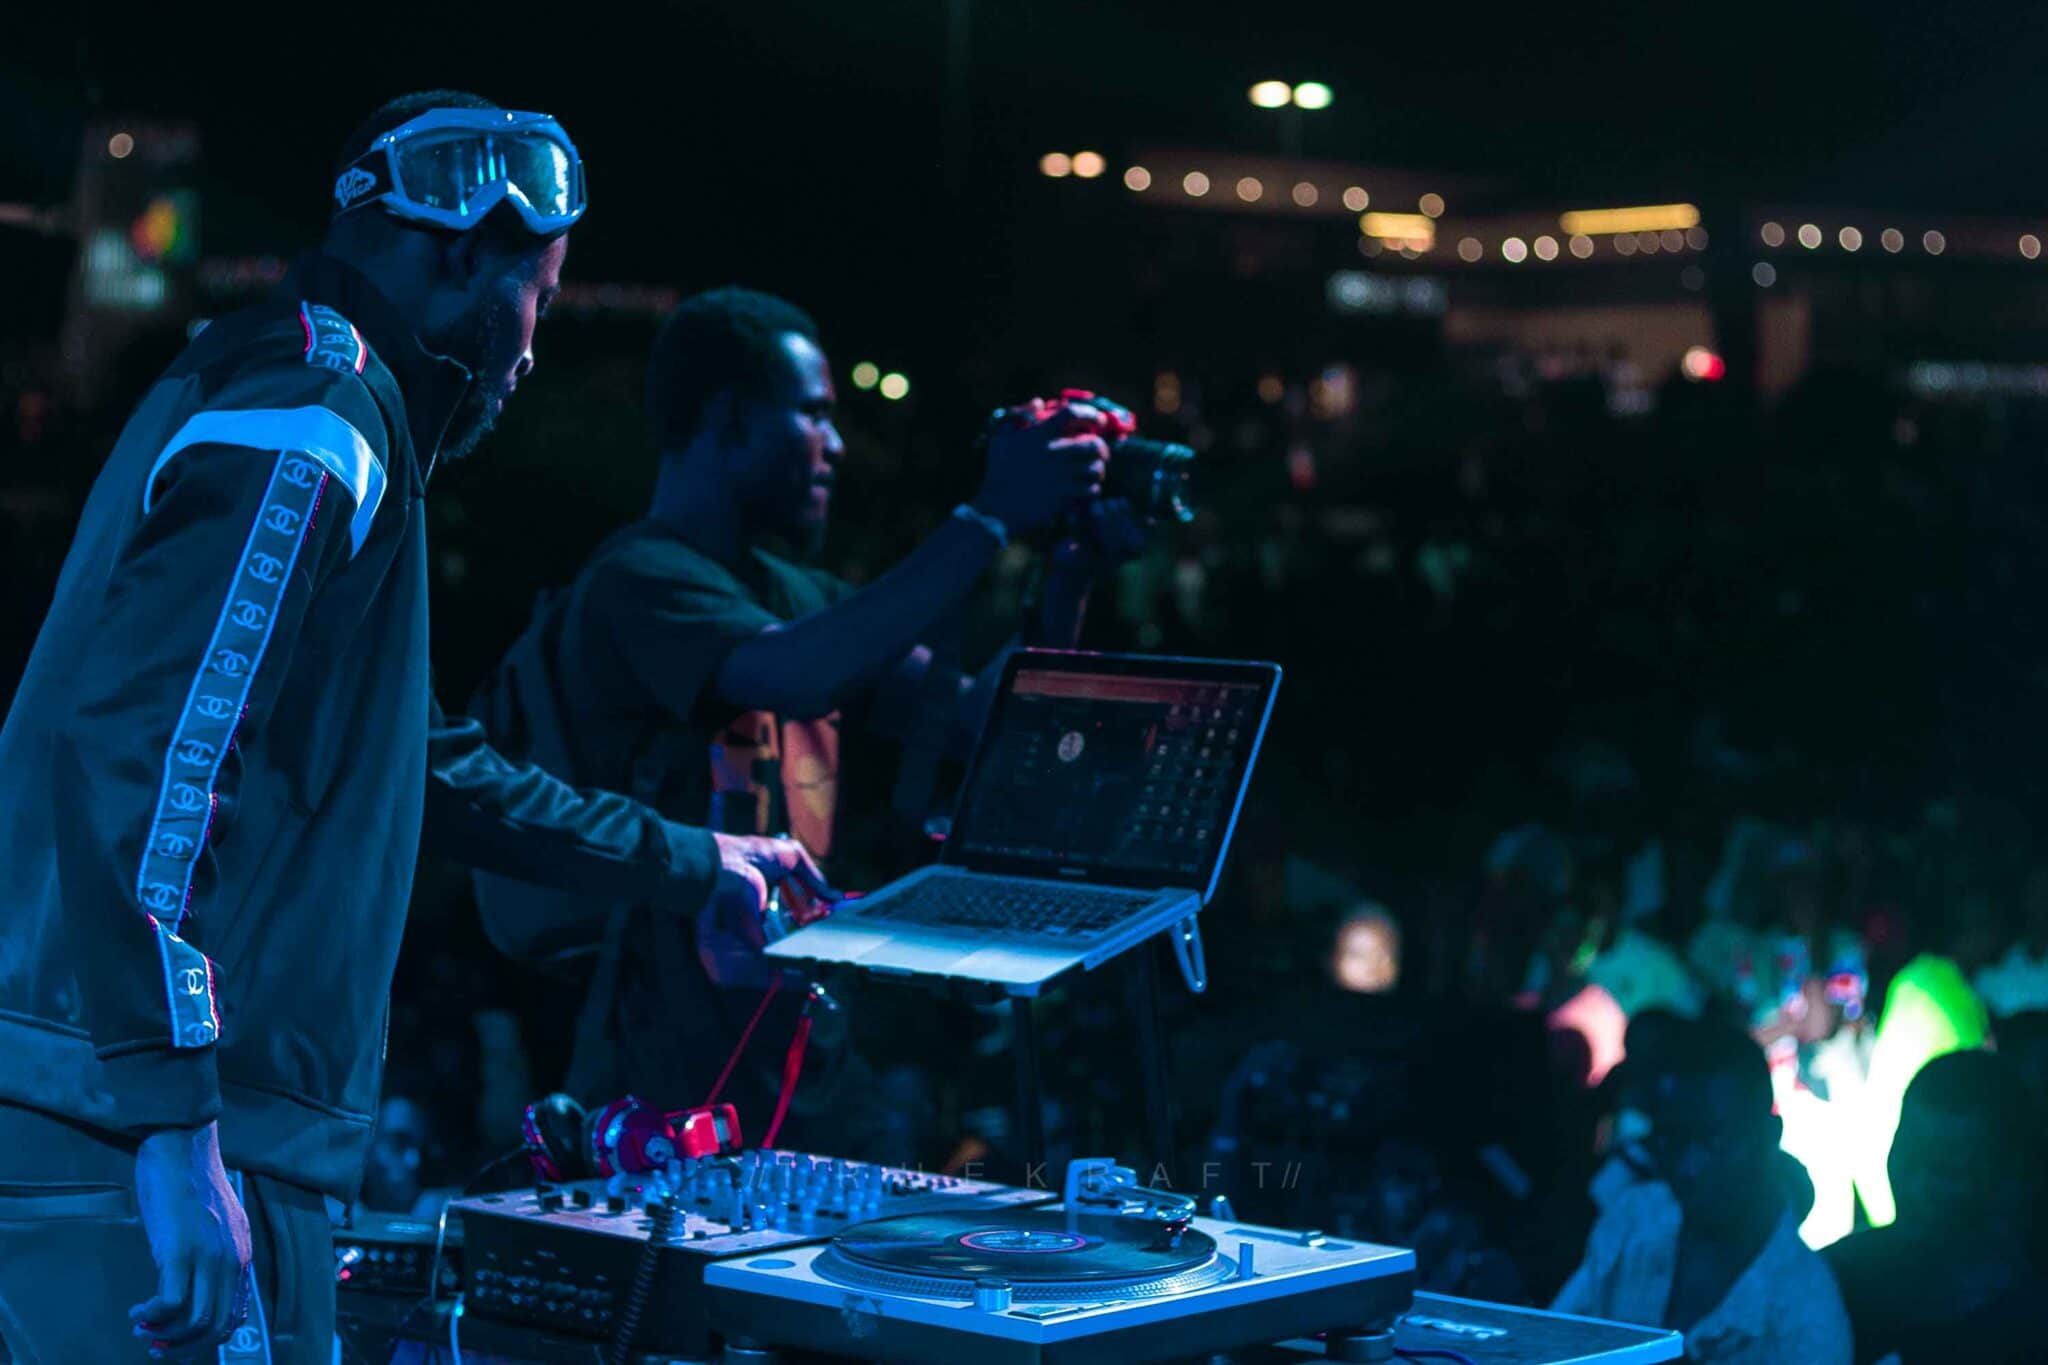 DJ Sly hosts biggest DJ Concert at West Hills Mall